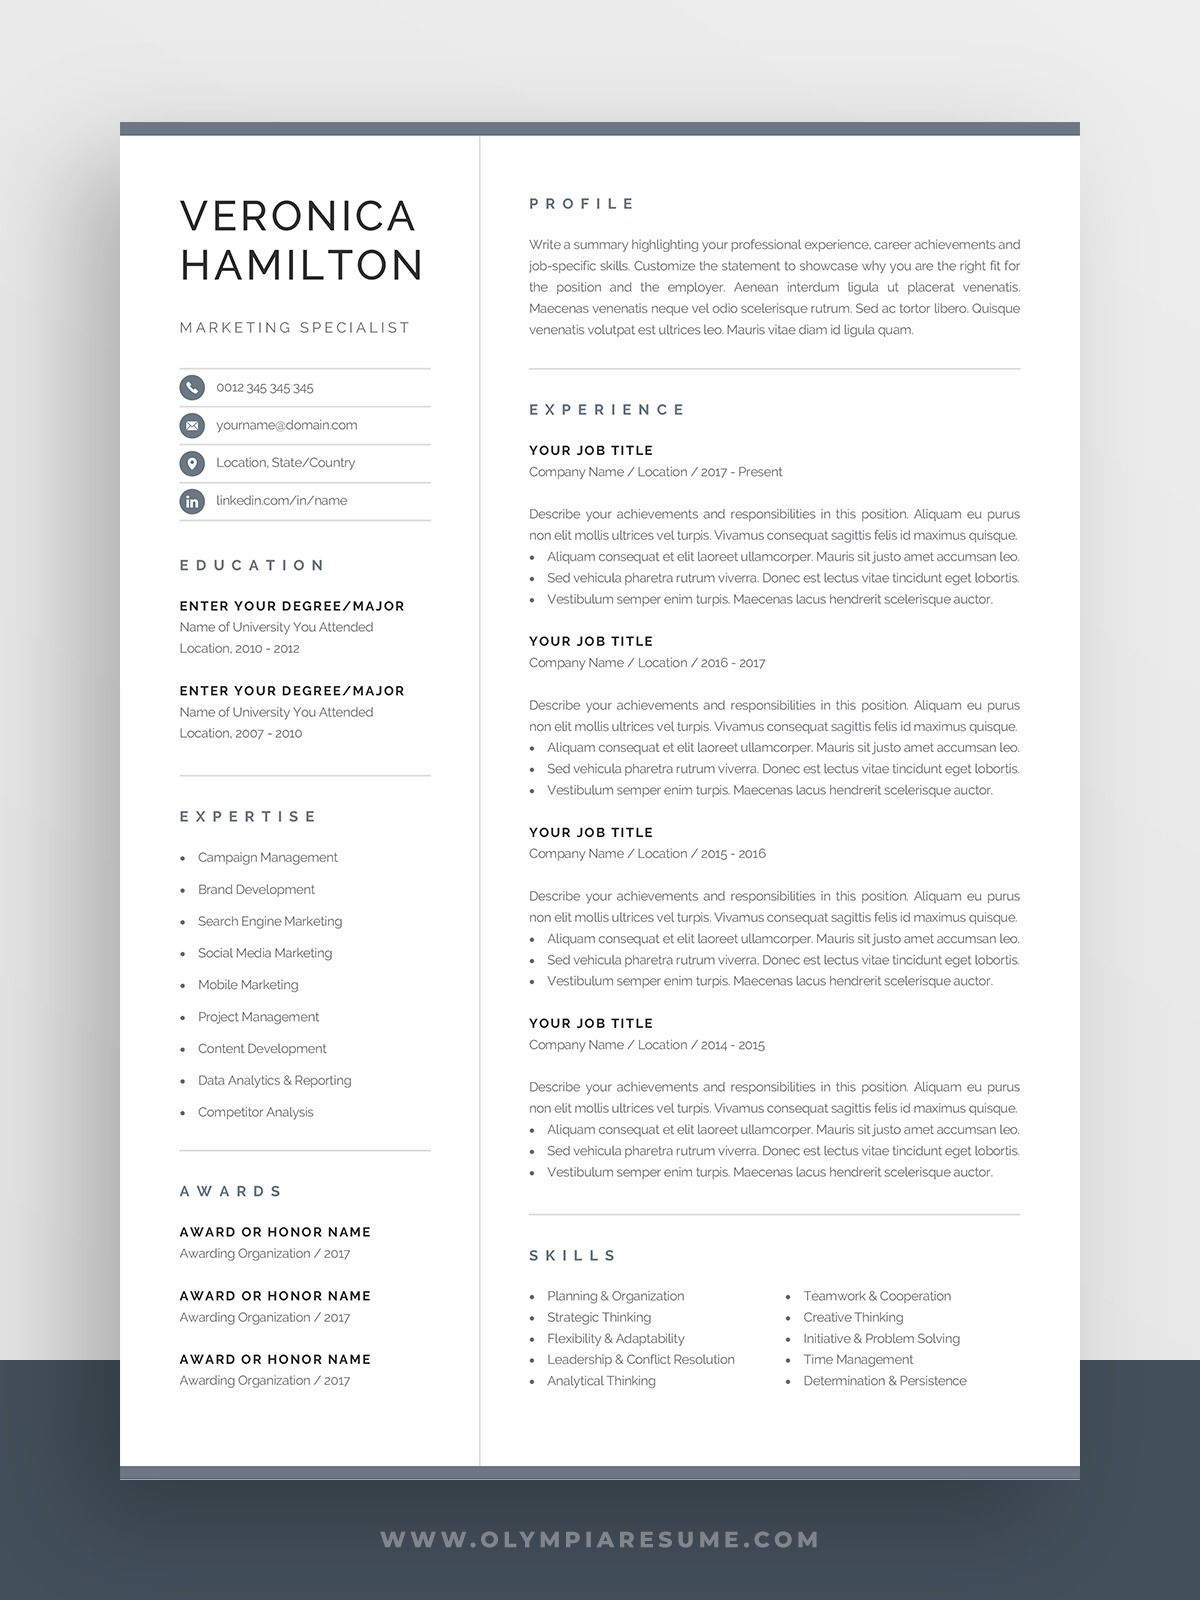 Professional Resume Template Compact 1 Page Resume Template Modern One Page Cv For Word Mac Pages Instant Download Veronica In 2021 Resume Template Resume Template Professional One Page Resume Template